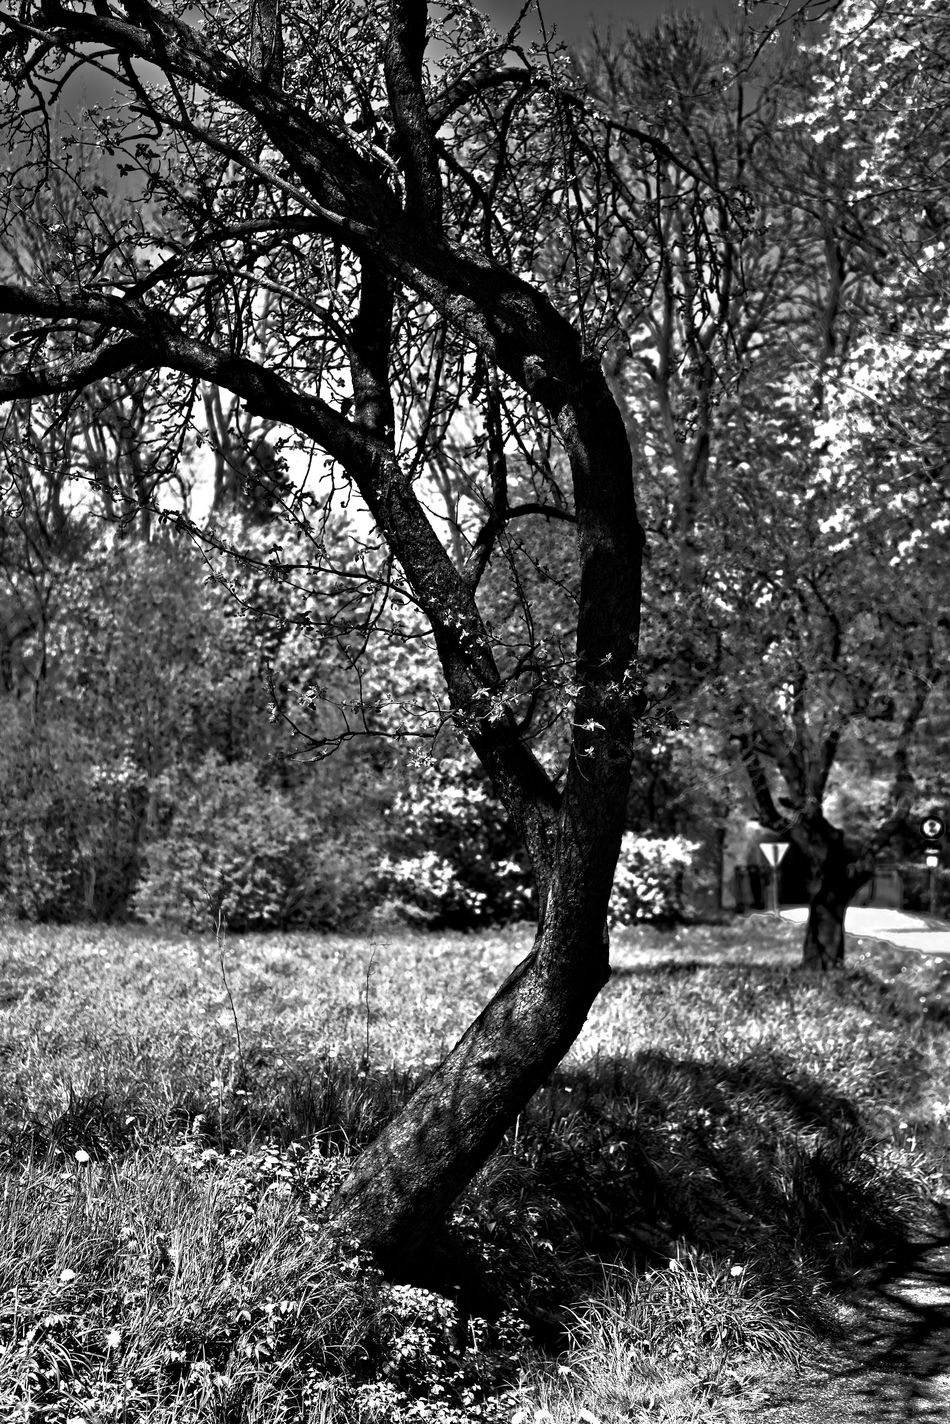 Beauty In Nature Blackandwhite Branch Day Growth Huge Nature No People Outdoors Sky Tranquil Scene Tranquility Tree Tree Trunk